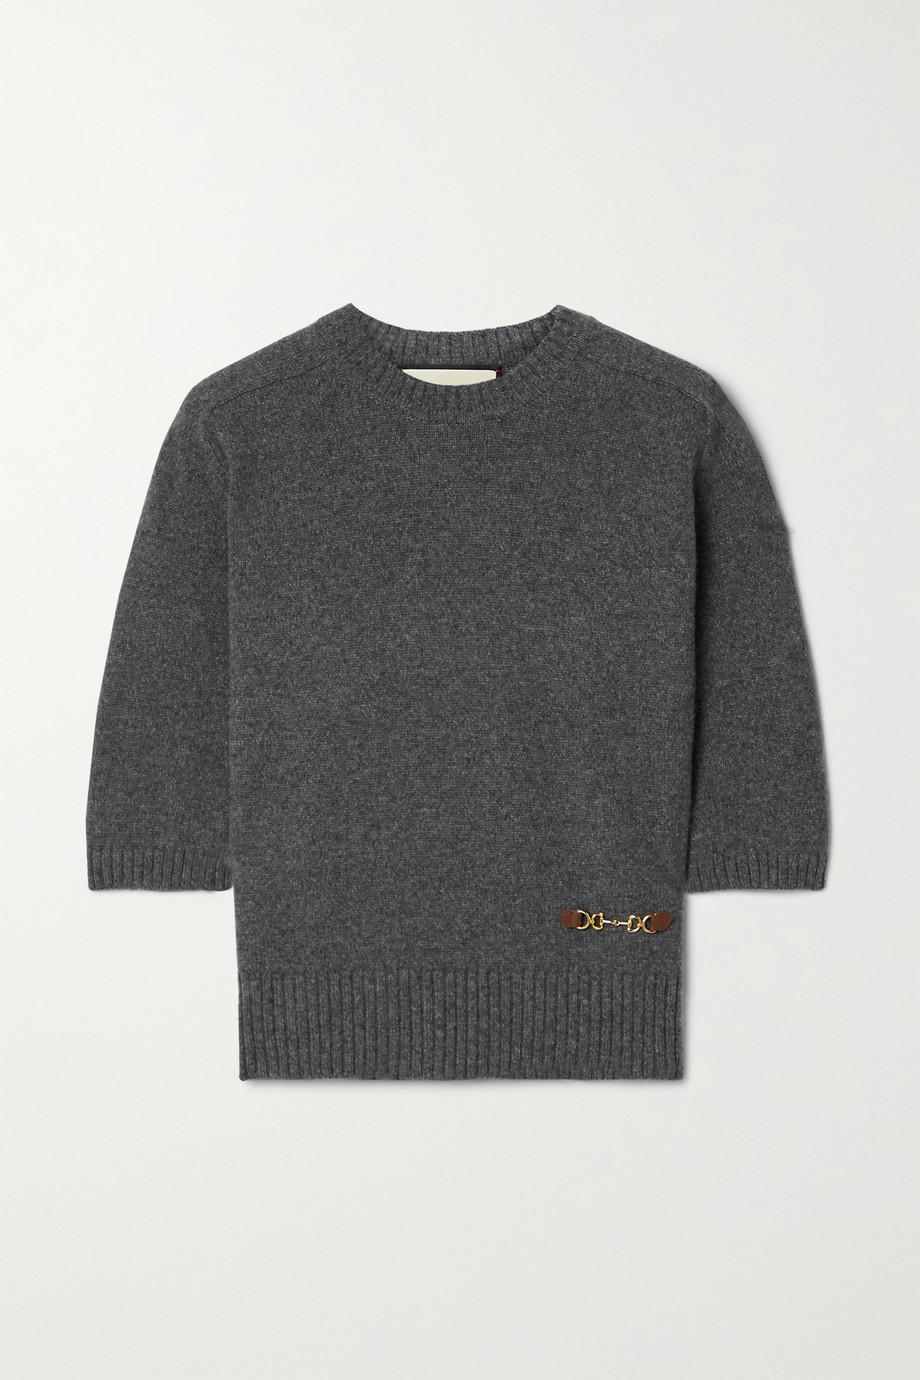 GUCCI Horsebit-detailed leather-trimmed cashmere sweater